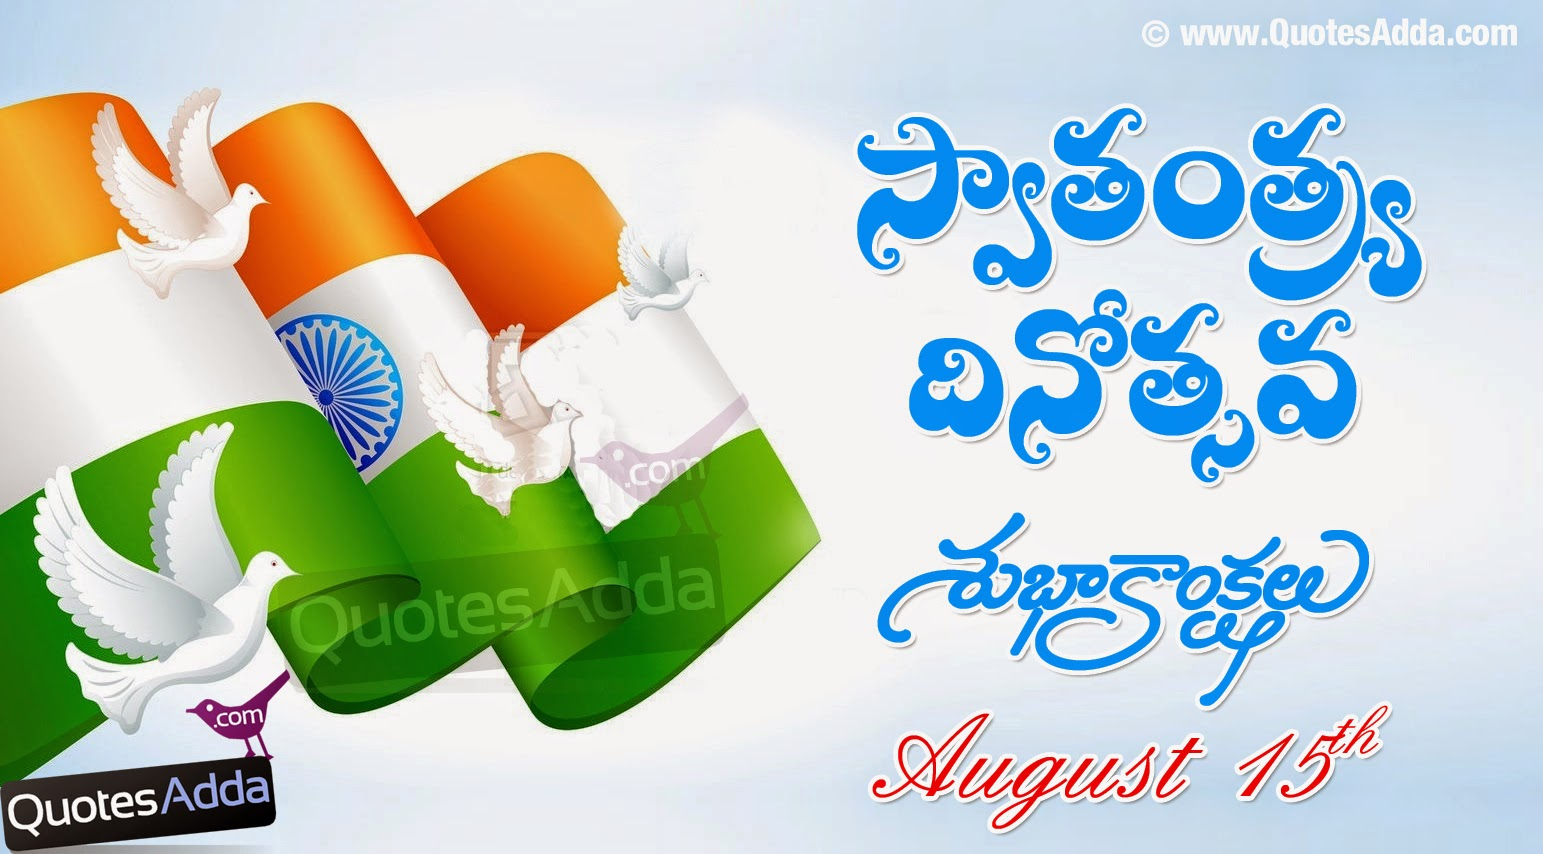 independence day telugu Indian independence day essay in telugu independence day what is an independence dayindependence day, observed annually on 15 august in india commemorating the nation's independence from kingdom of great britain on 15 august 1947.